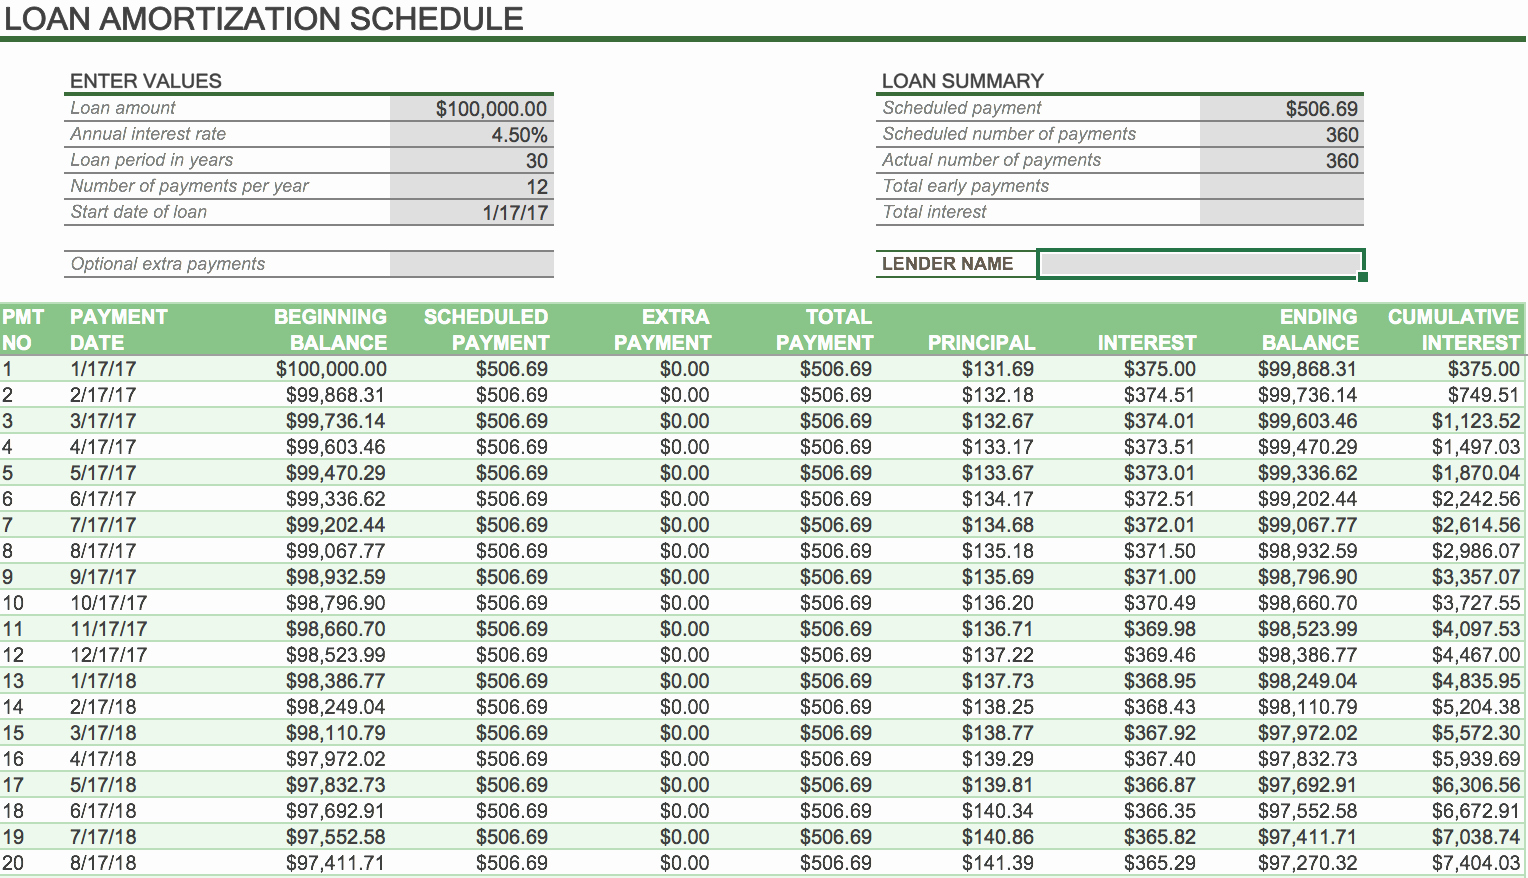 Mortgage Interest Amortization Schedule Excel Best Of Excel Loan Amortization Schedule with Extra Principal